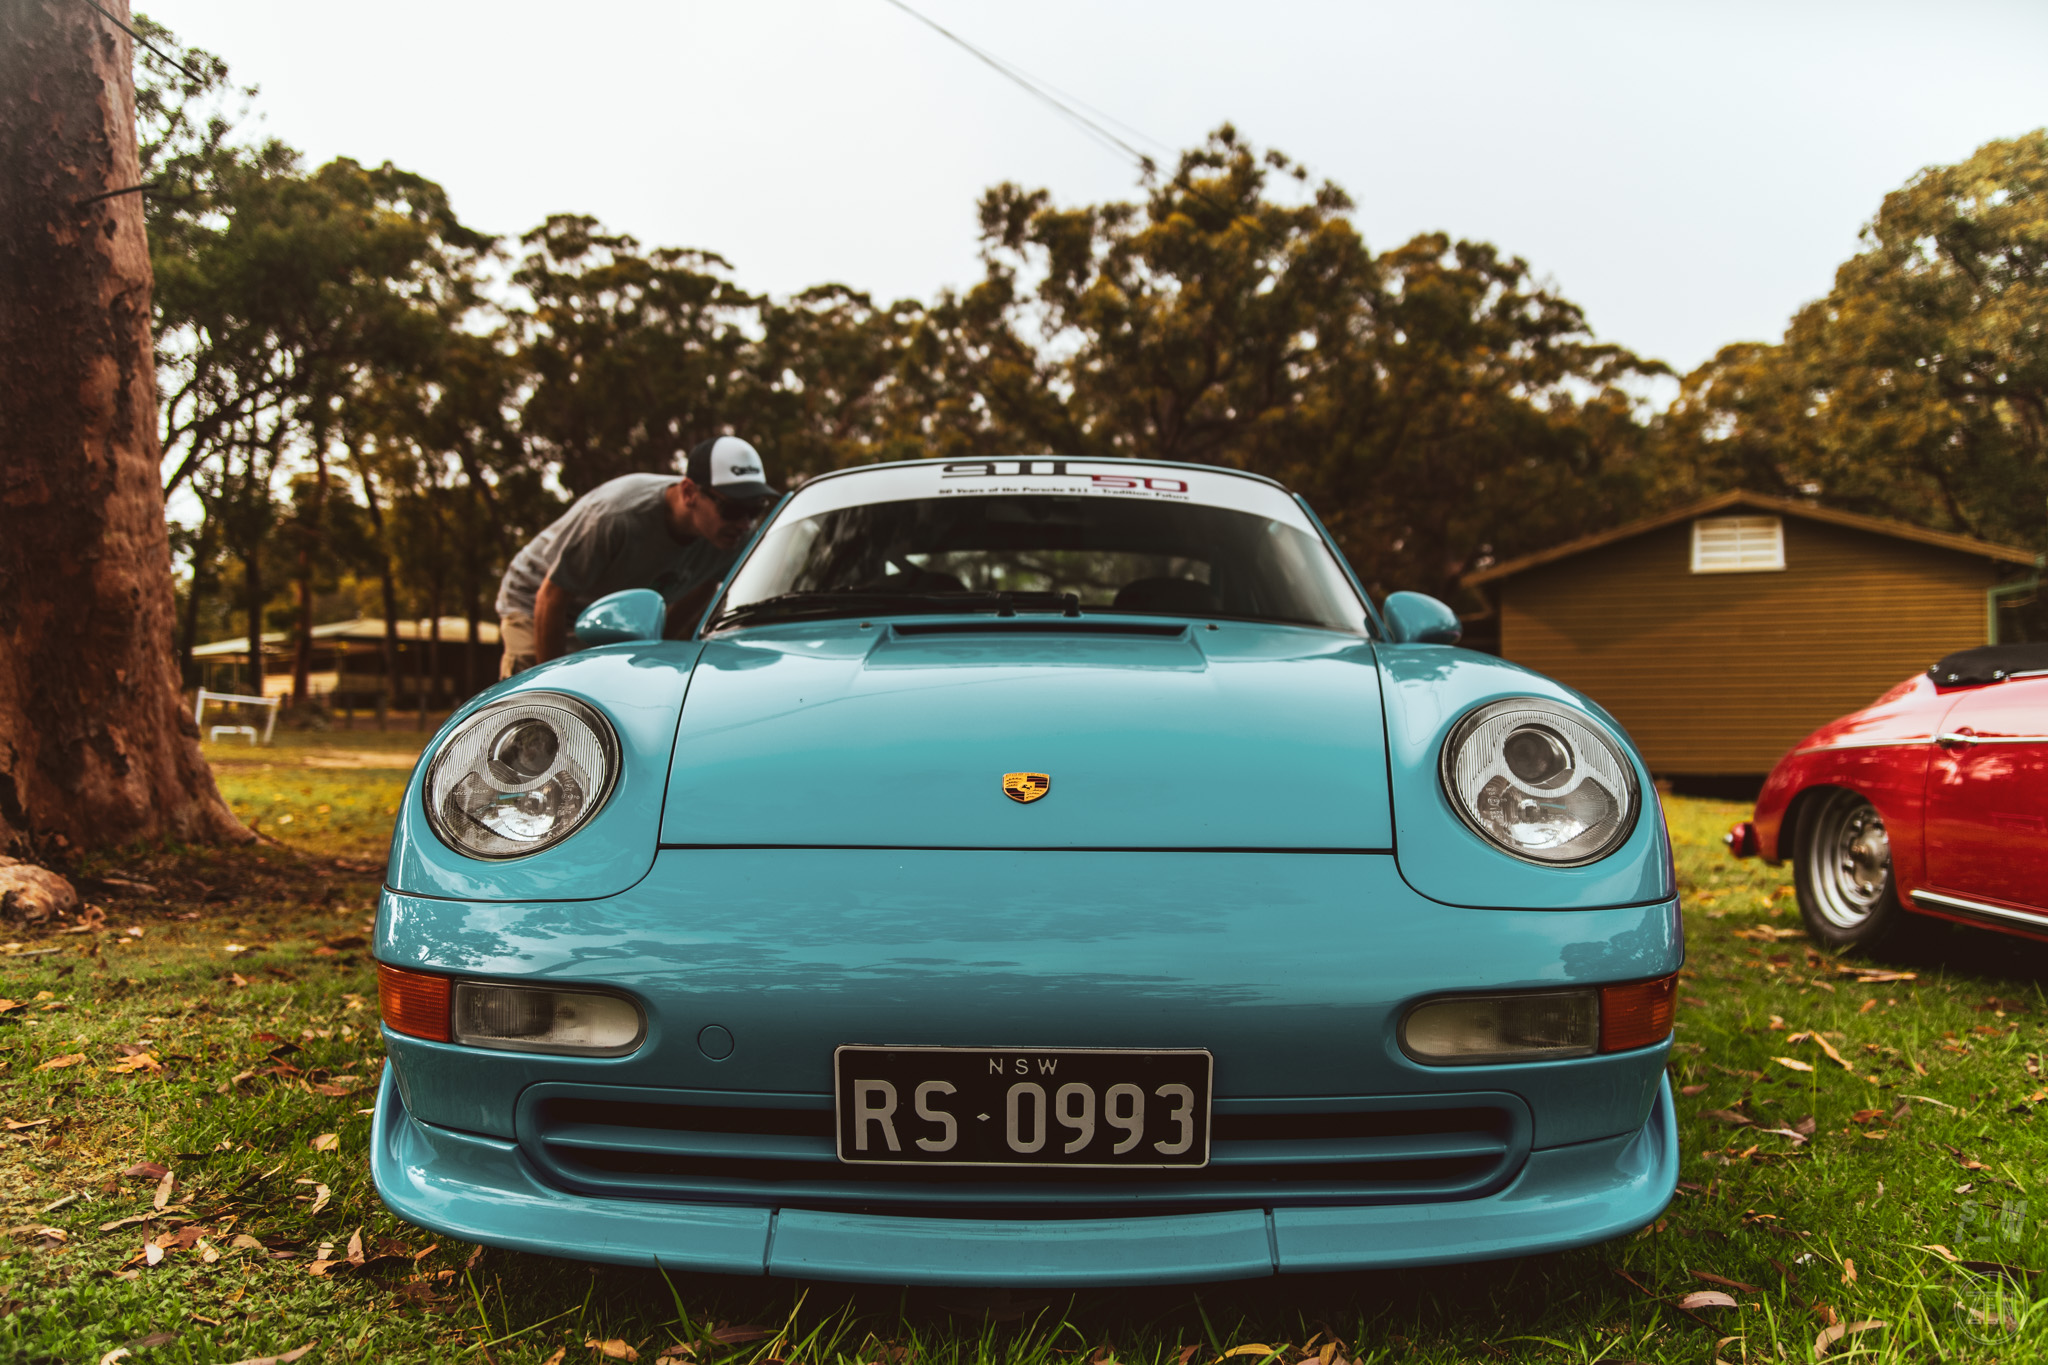 2019-12-08 - Porsches & Coffee 038